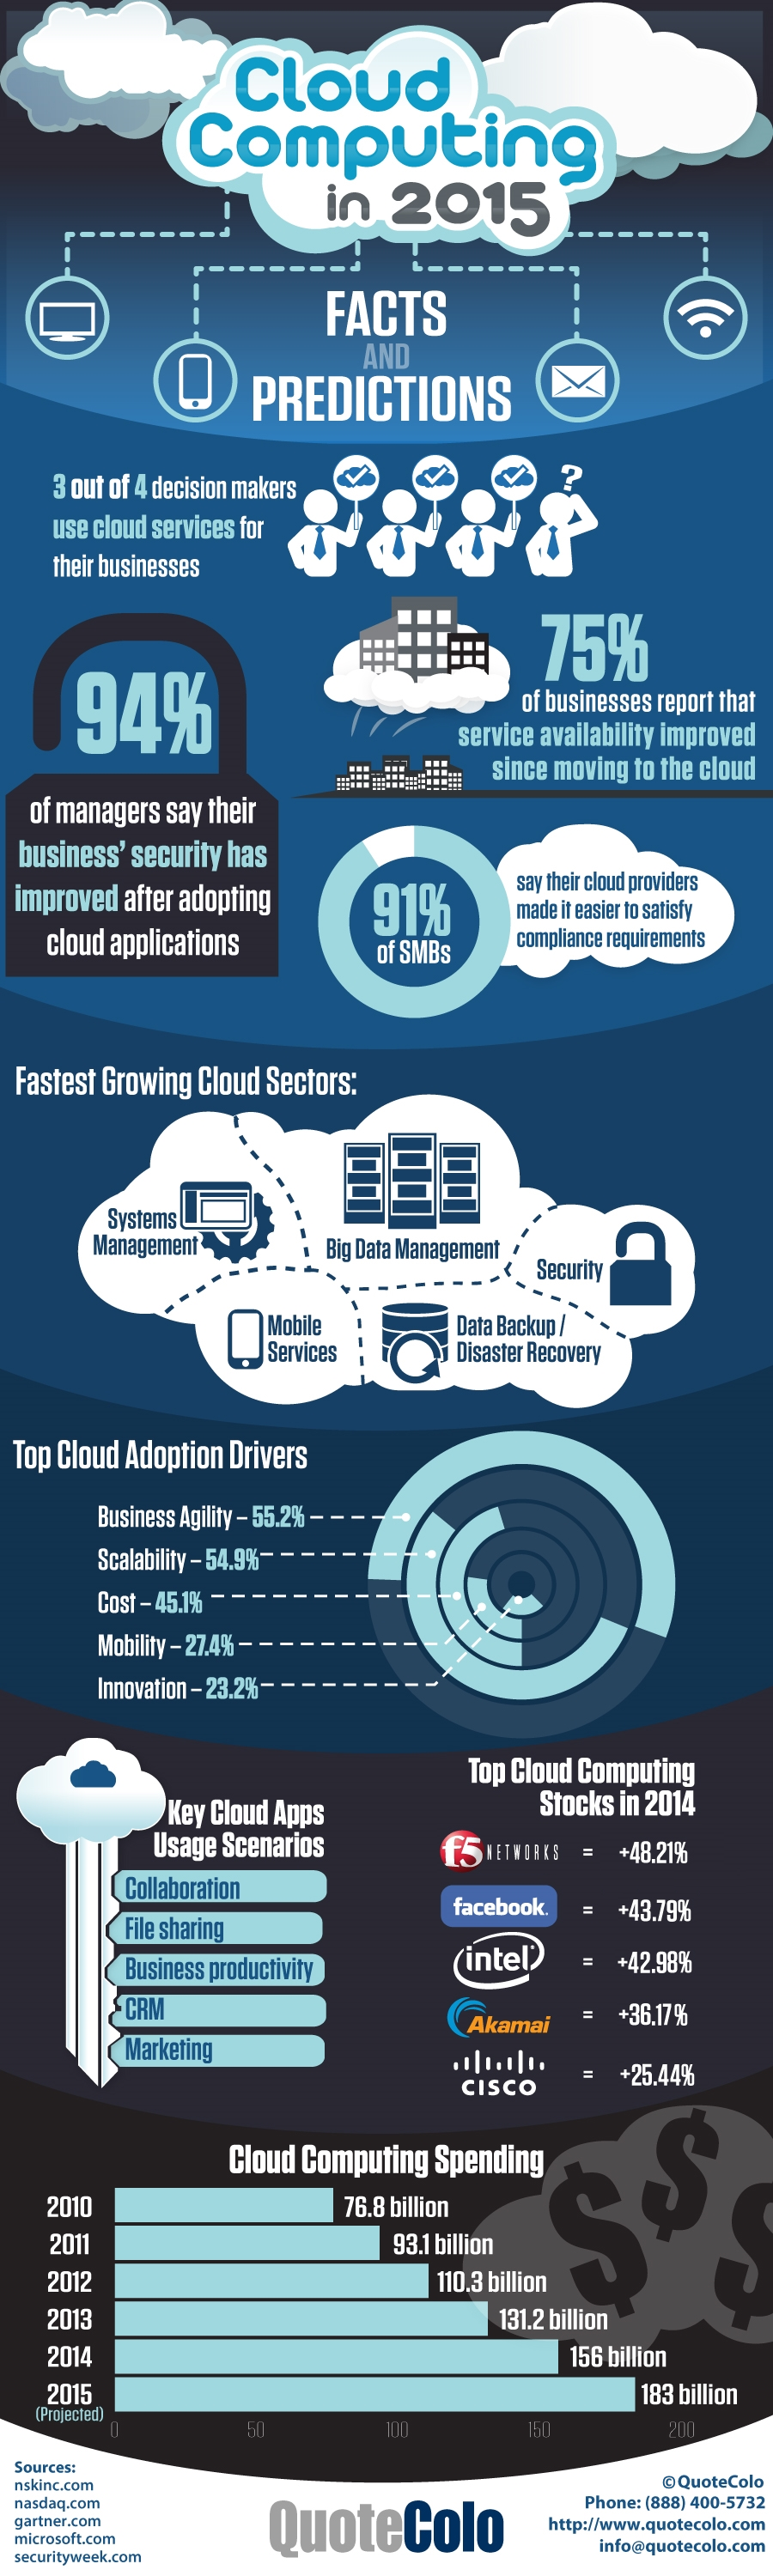 cloud-computing-in-2015-predictions